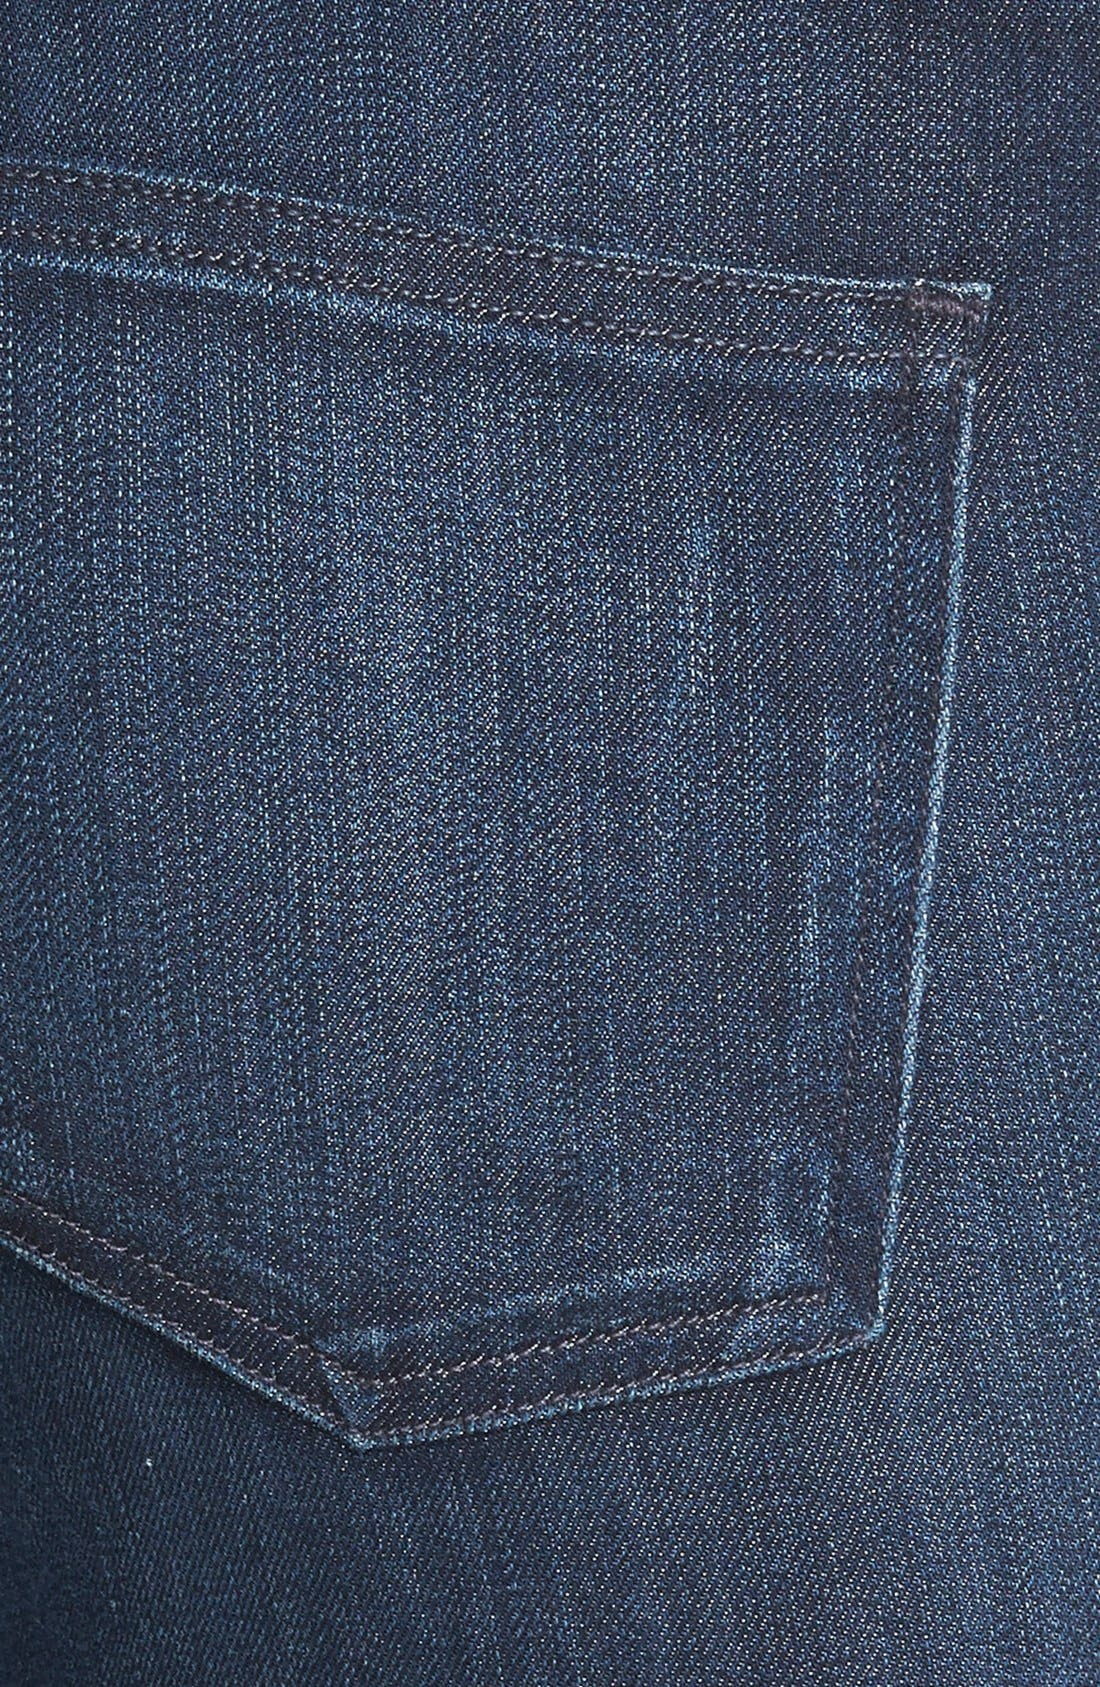 Alternate Image 3  - Citizens of Humanity 'Rocket' High Rise Skinny Jeans (Space)